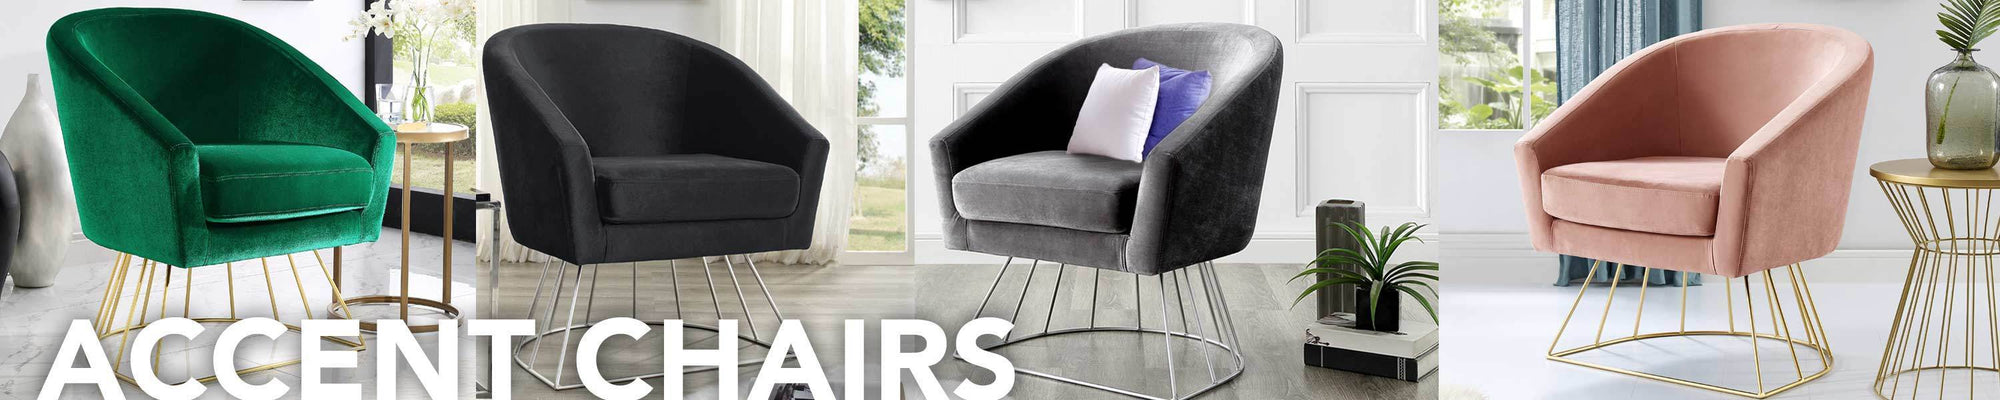 accent, accent chairs, midcentury modern, inspired home, home decor, living room, inspired home